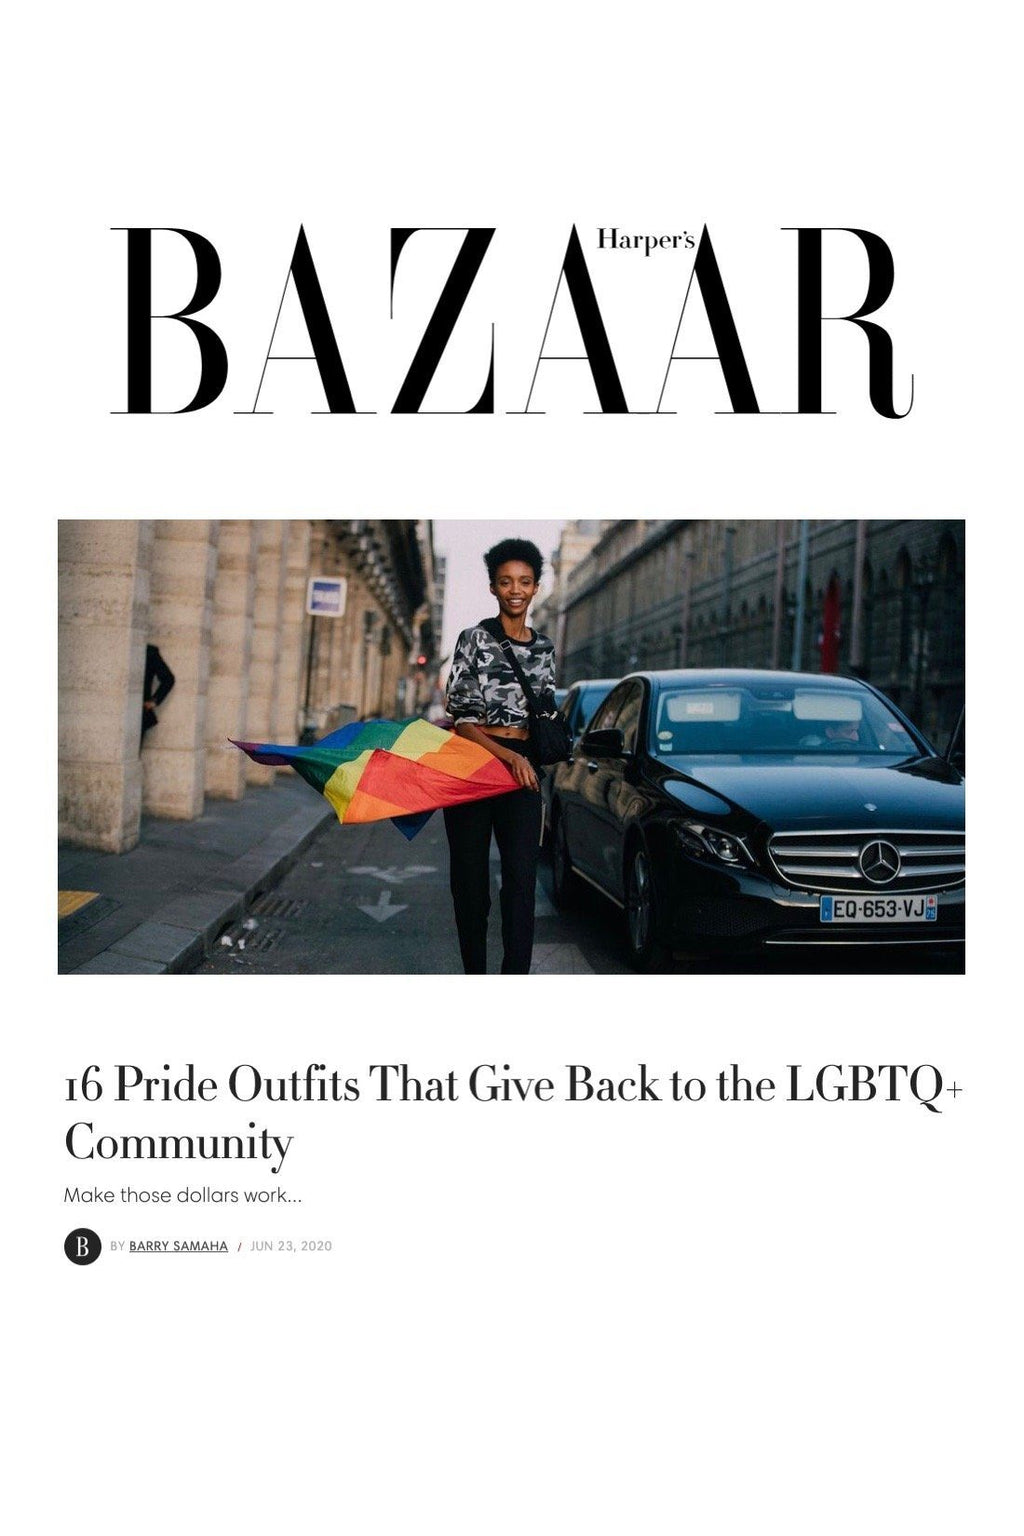 HARPER'S BAZAAR: 16 Pride Outfits That Give Back to the LGBTQ+ Community